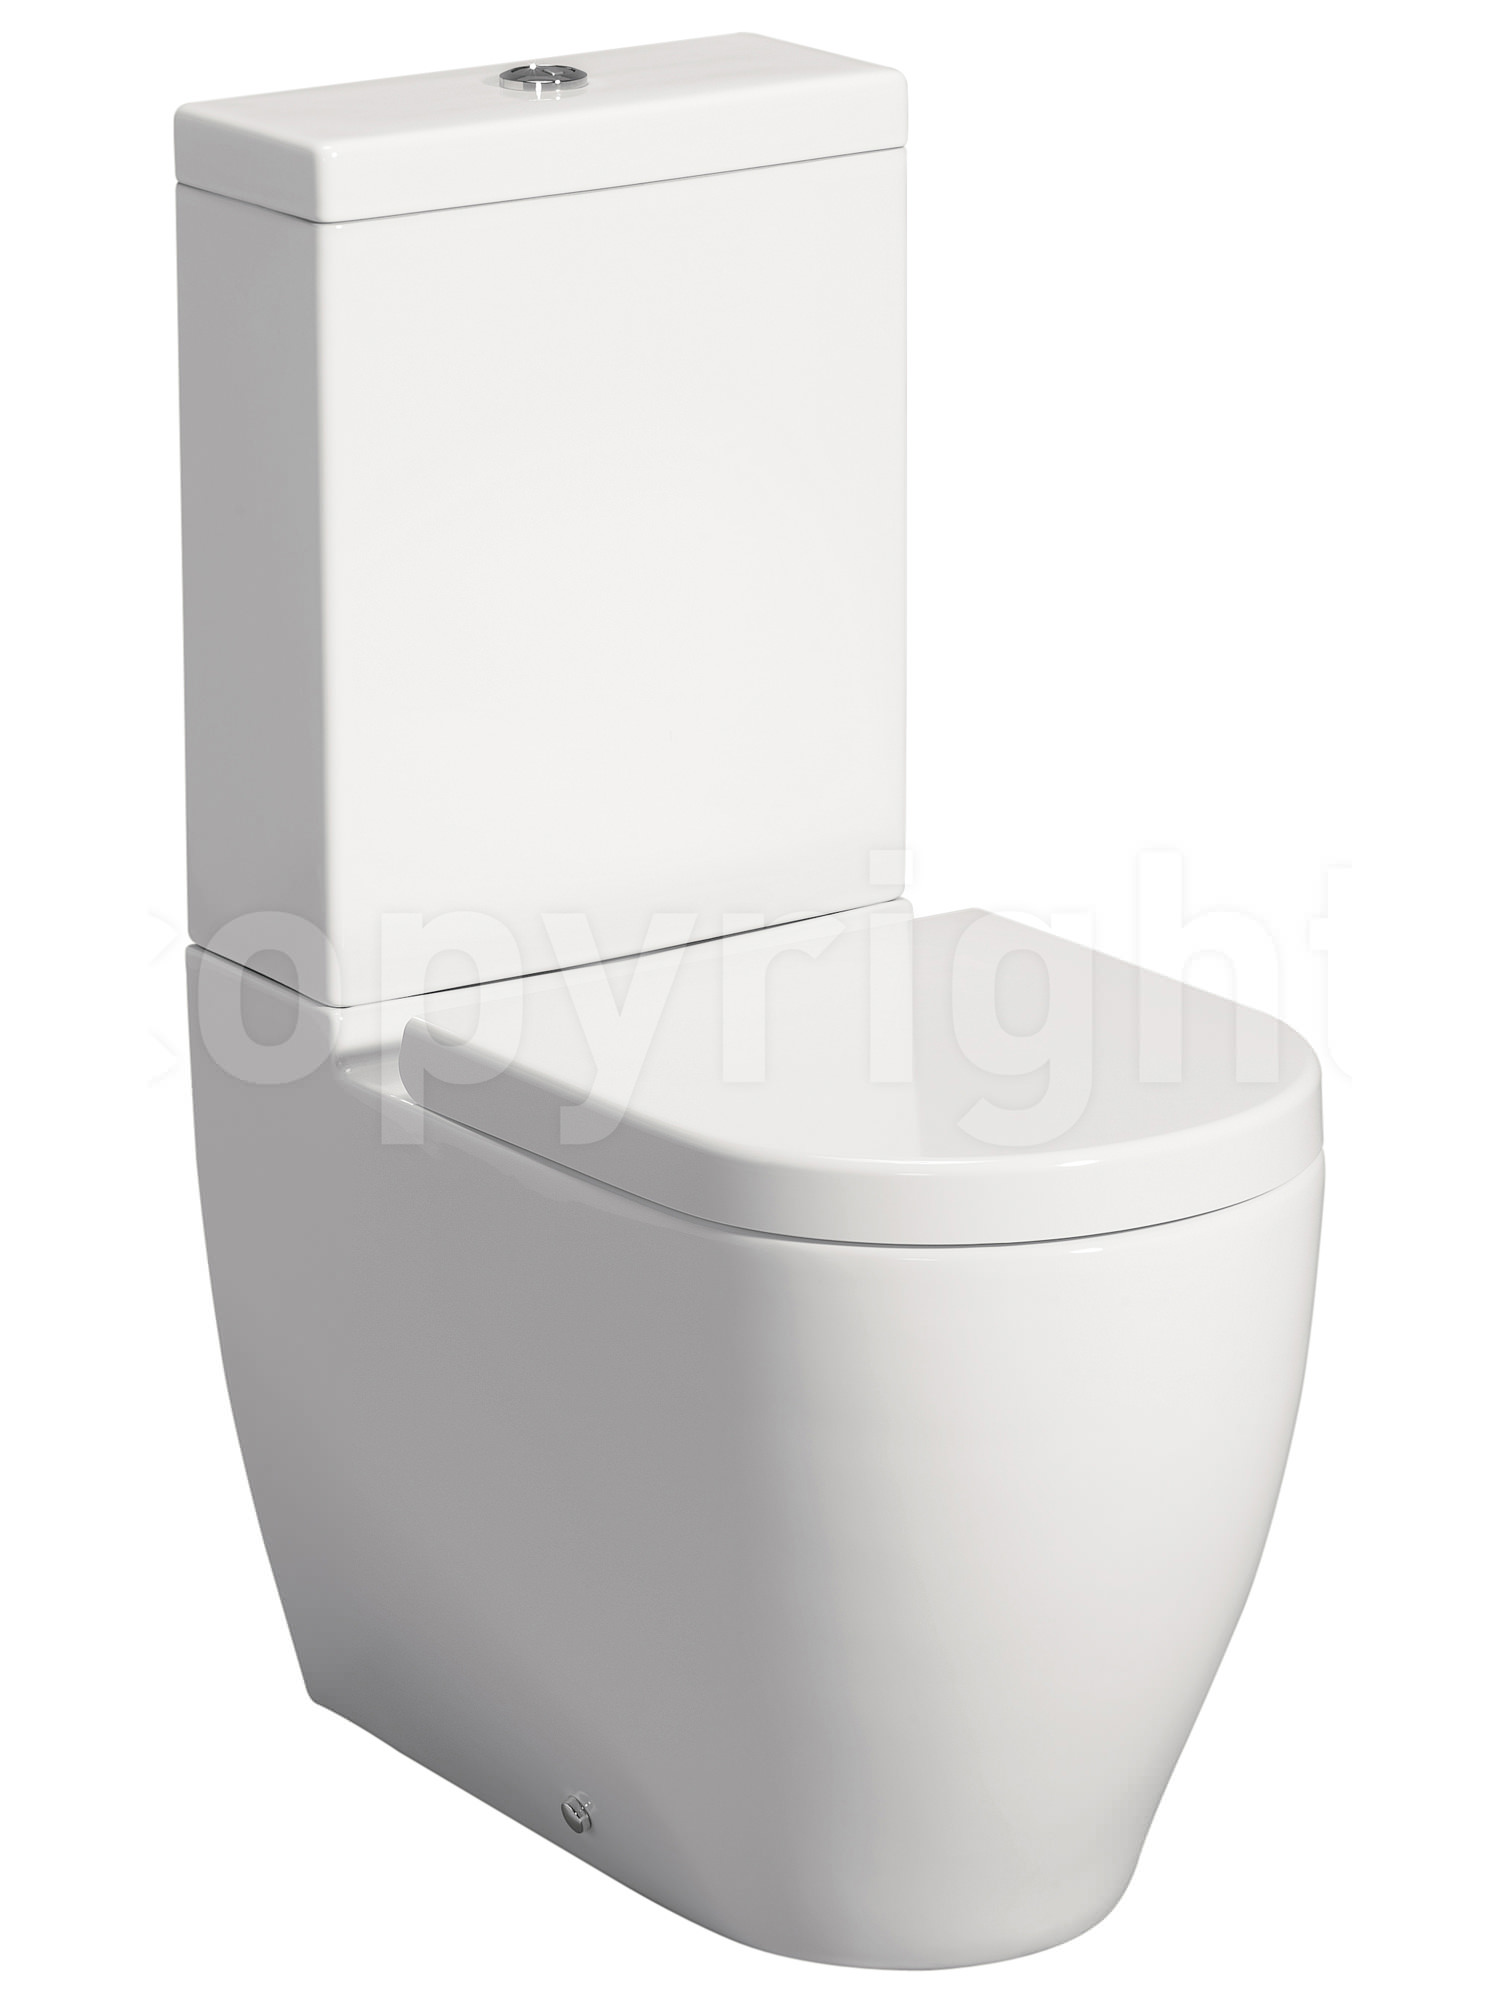 Wc Bauhaus Bauhaus Stream Ii Close Coupled Wc Pan 630mm With Cistern And Seat